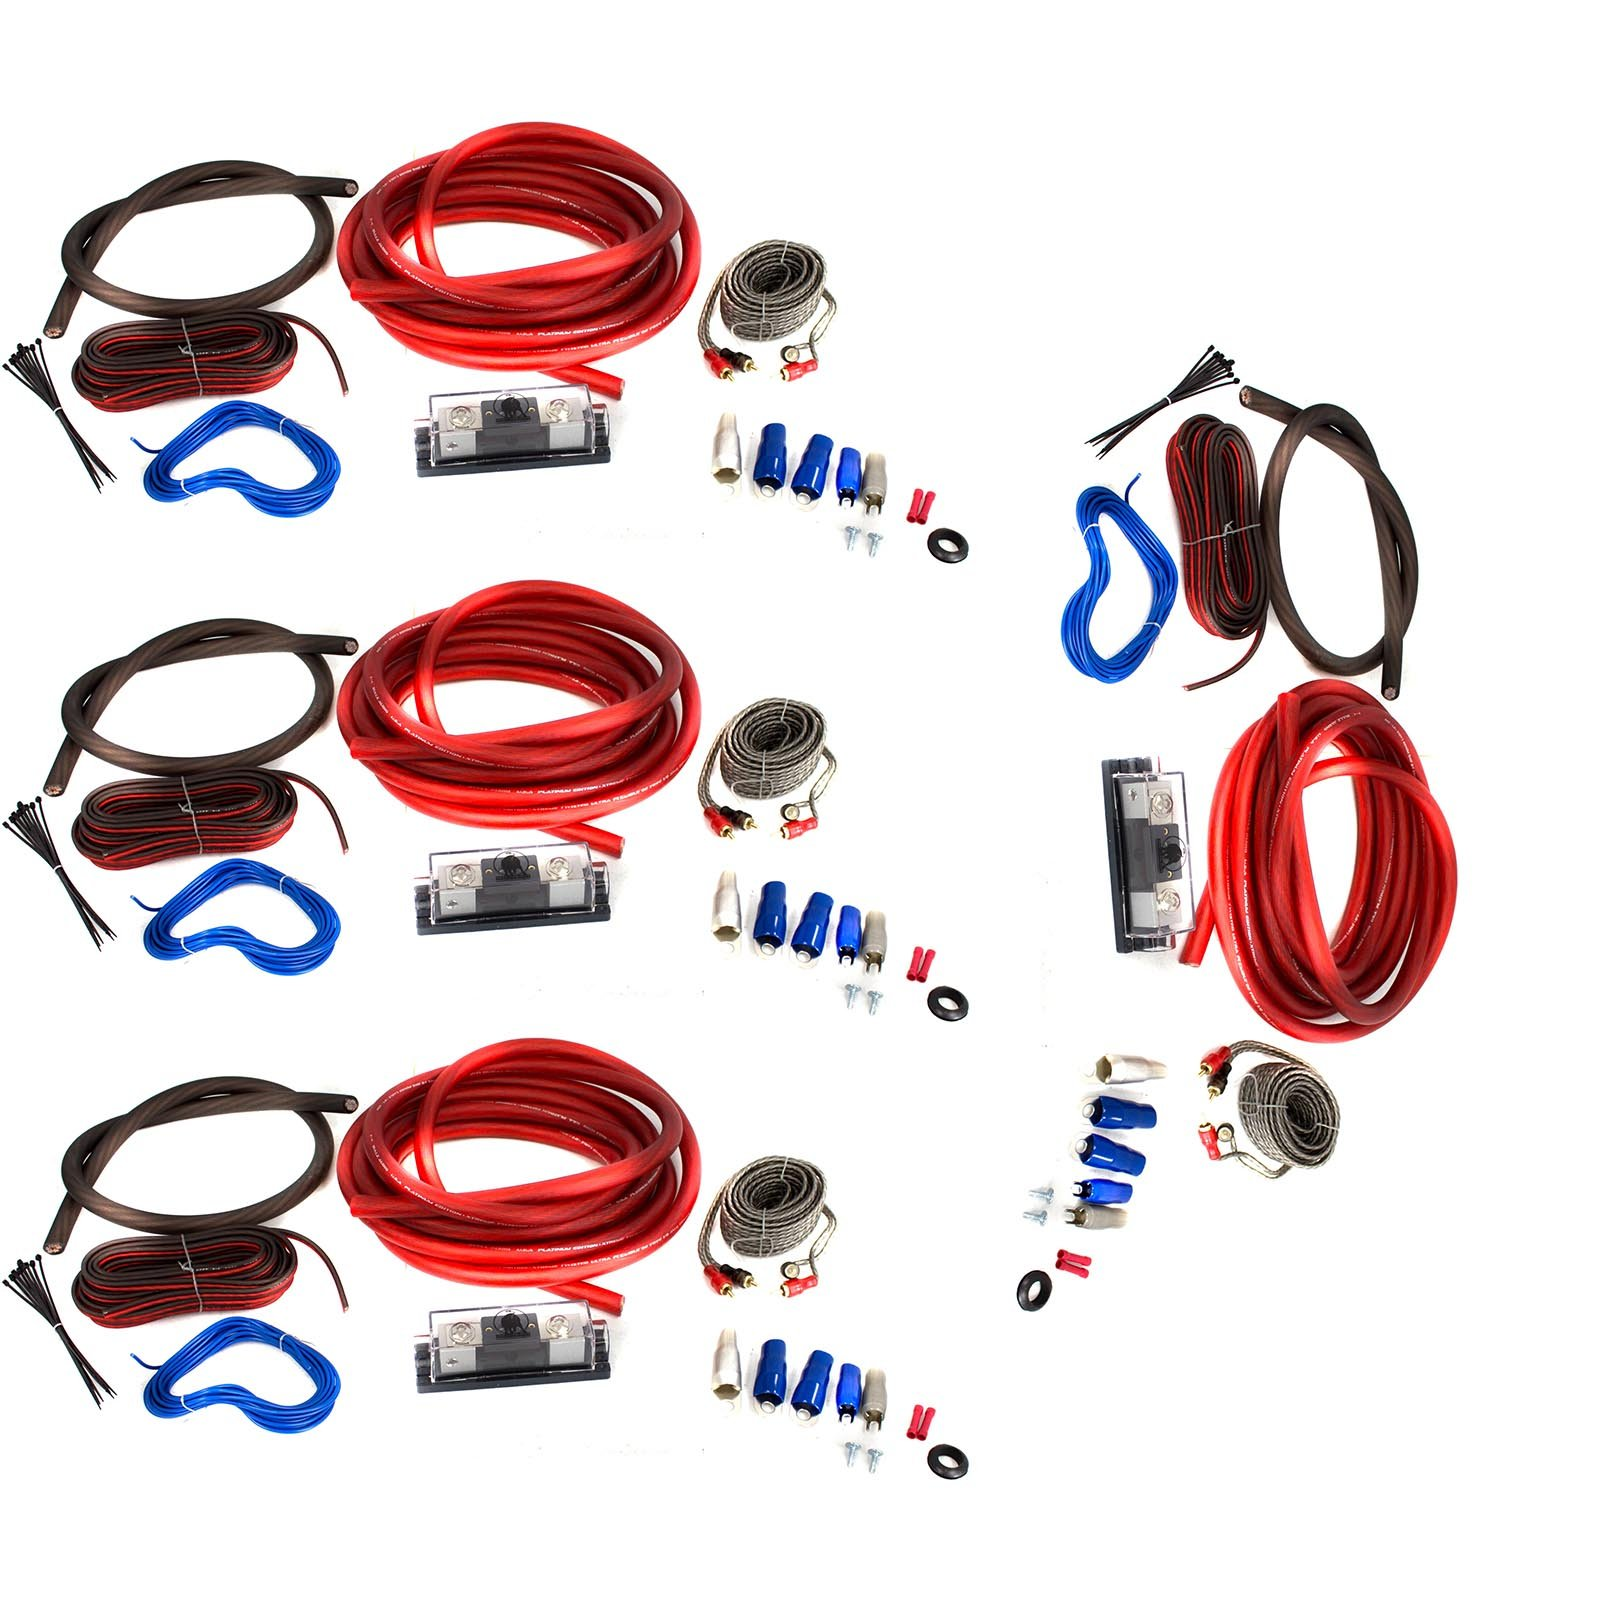 BULLZ AUDIO 1/0 Gauge Car Amplifier Amp Installation Wiring Kit Package, 4-Pack